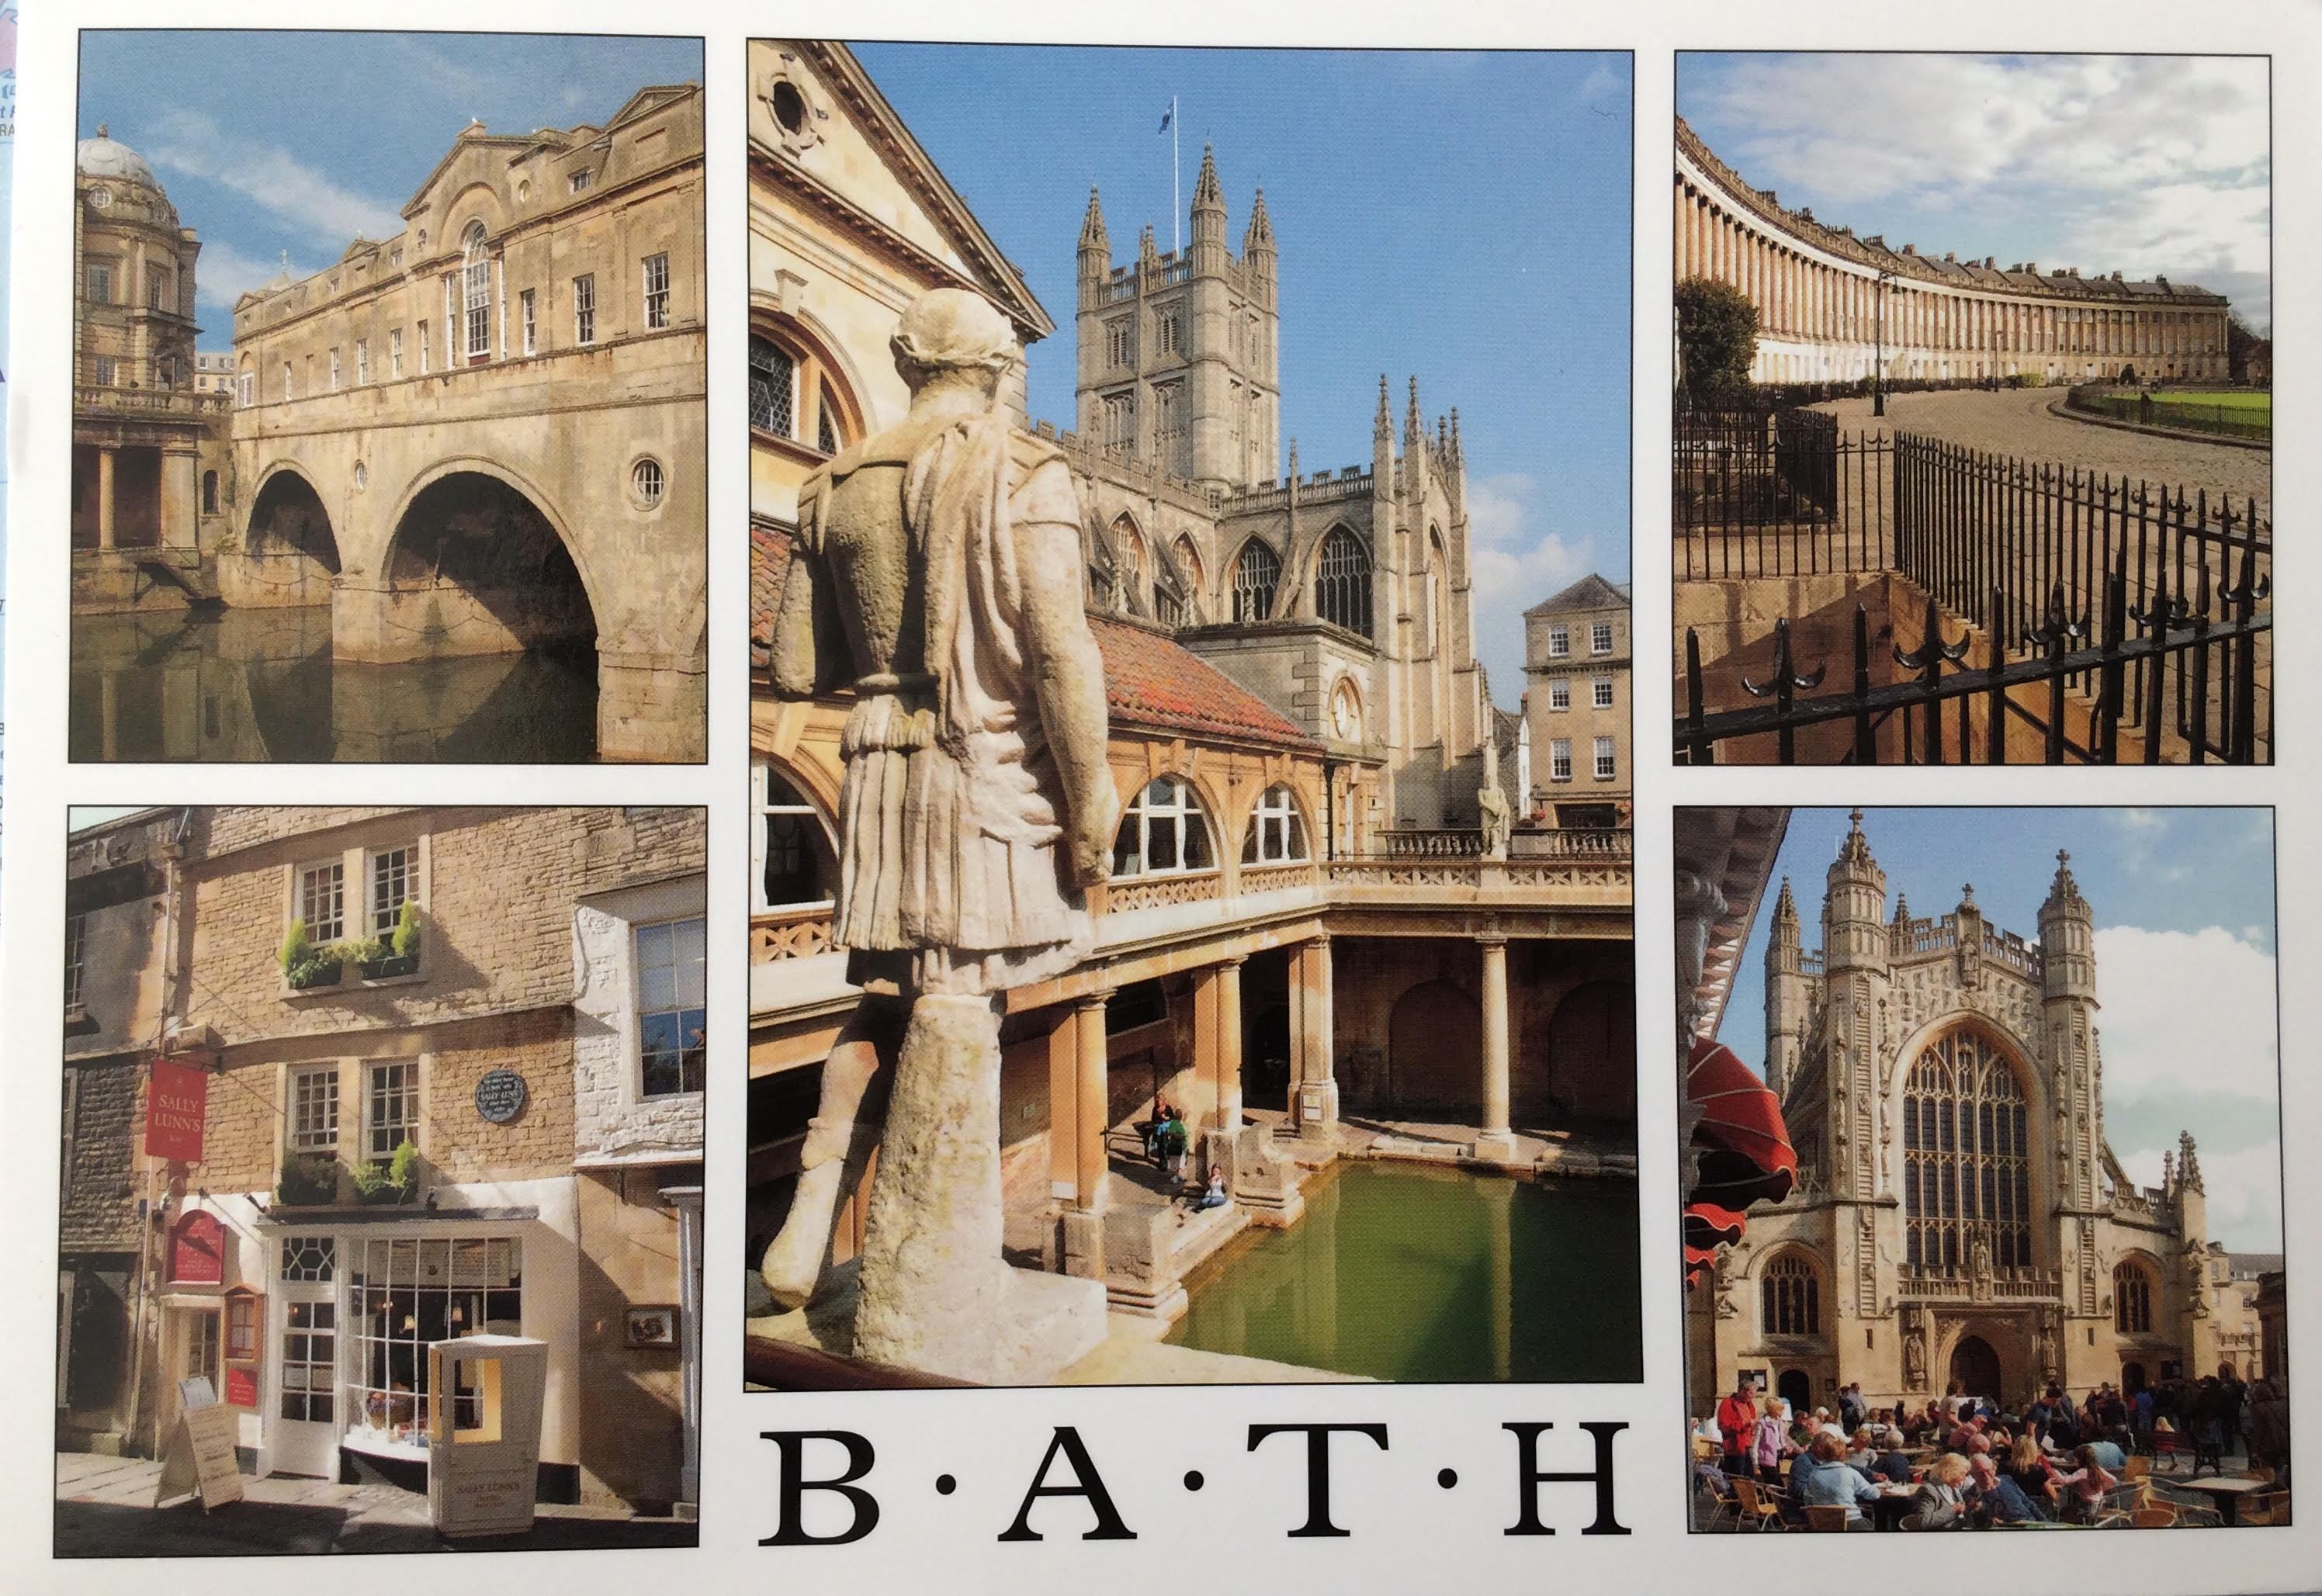 Bath (toll roads & rus in urbe) – Geography Cat\'s Project Postcard